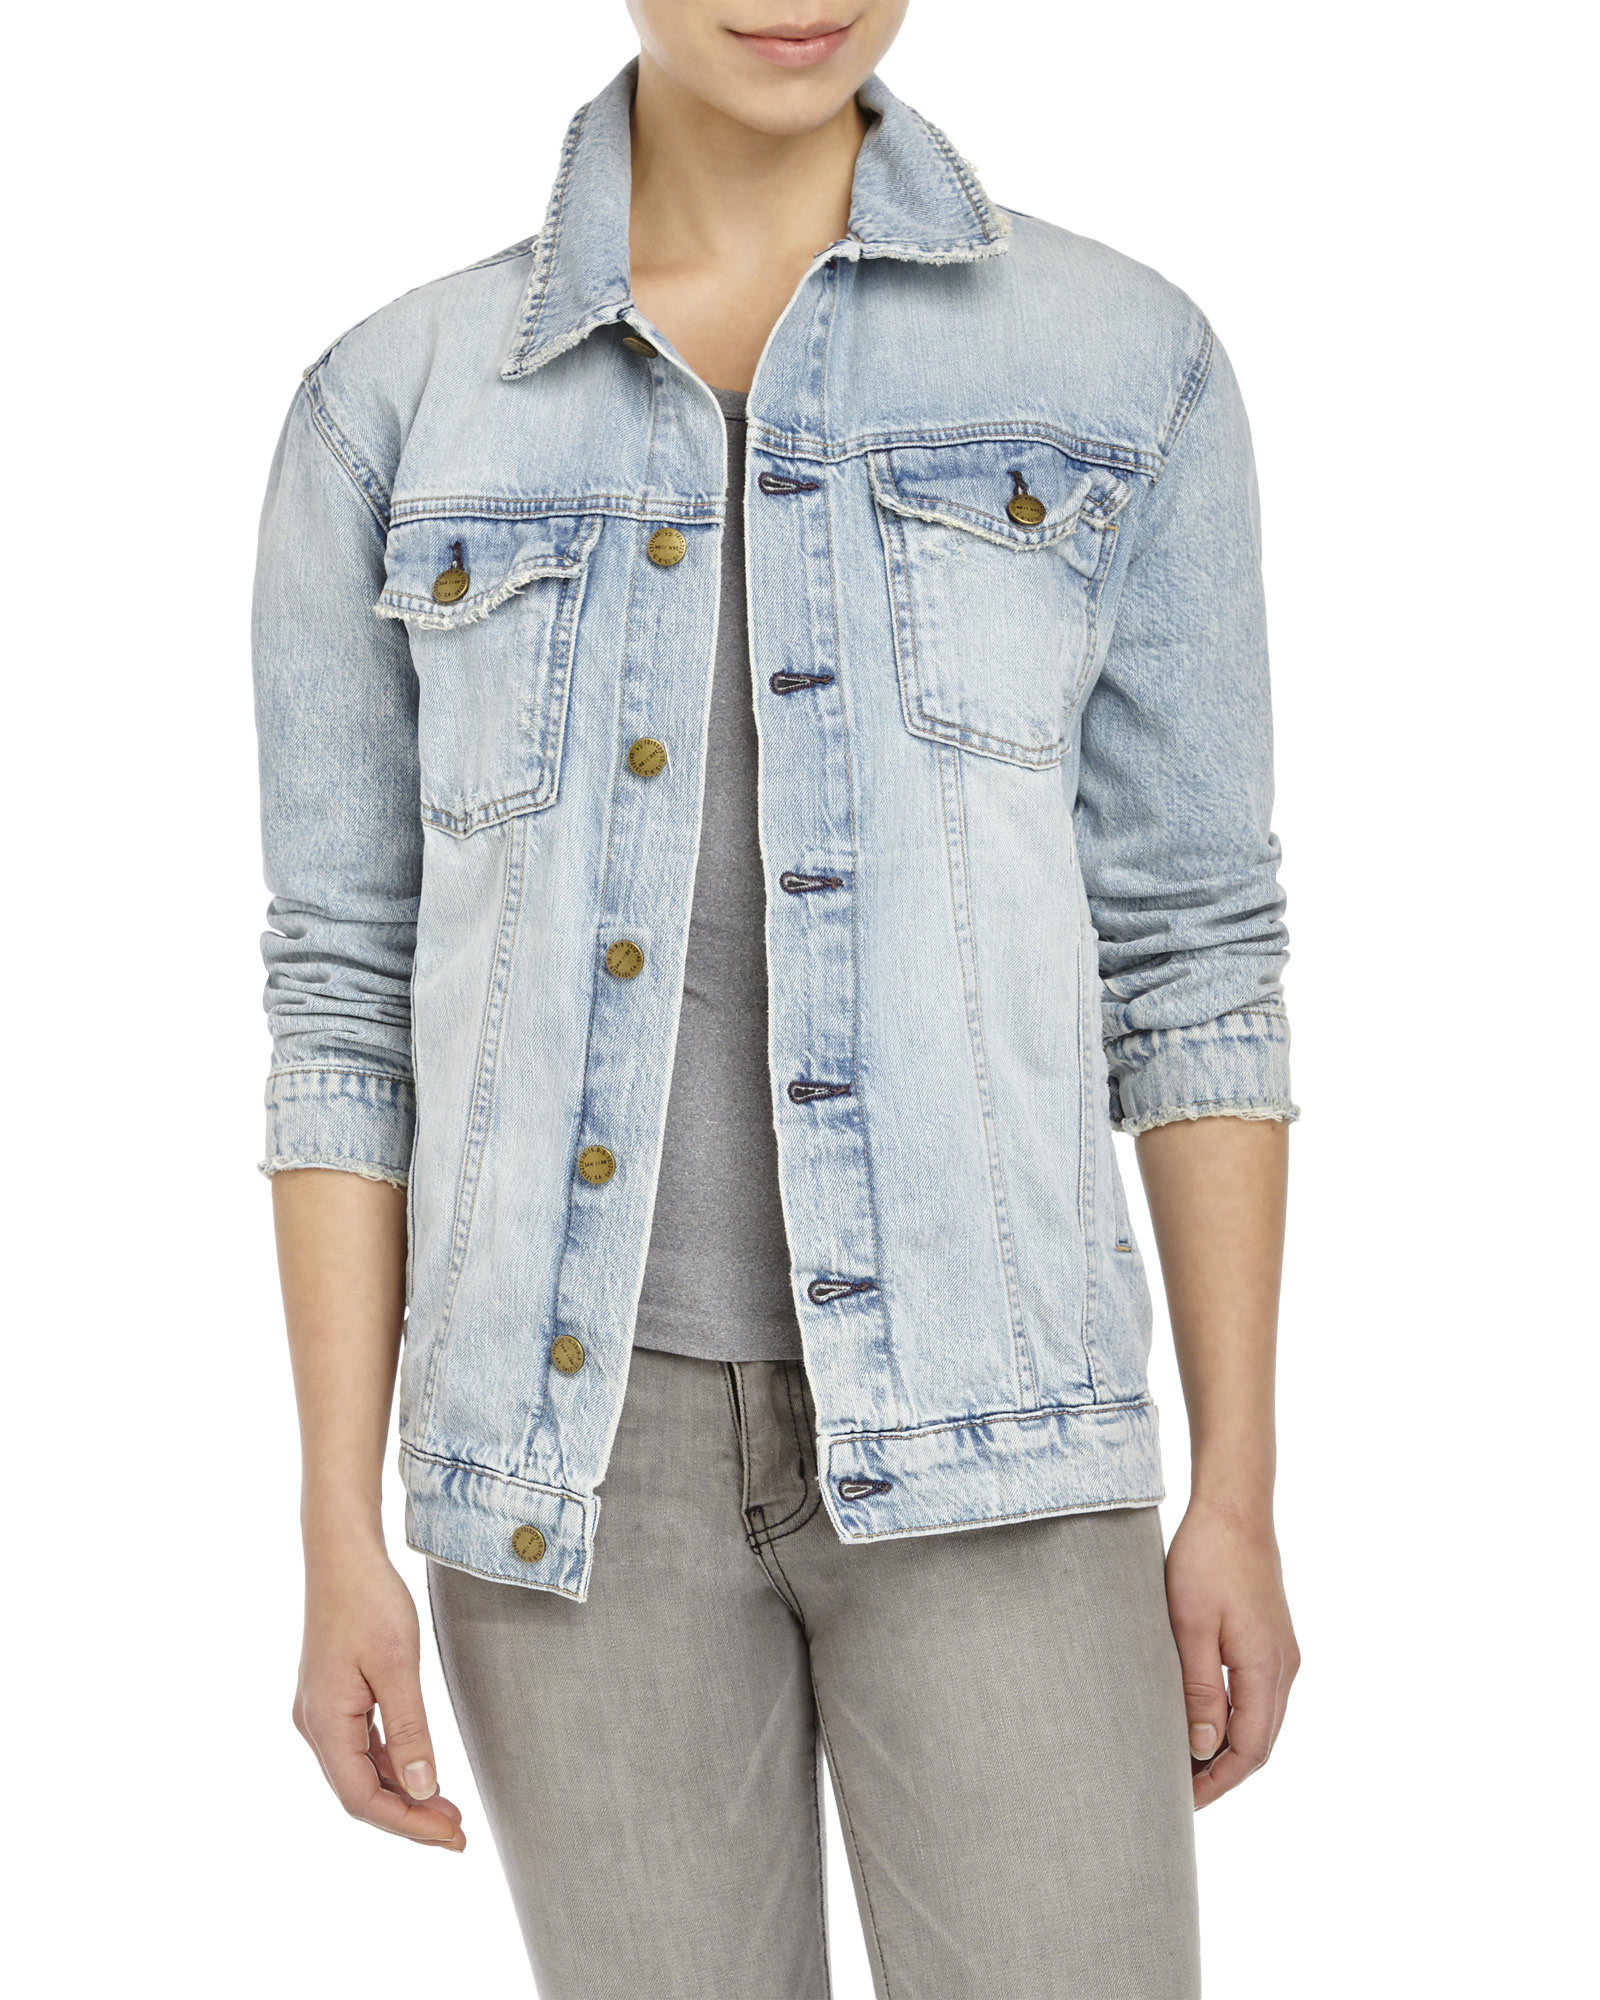 b991f7121 Lyst - Current Elliott The Oversized Trucker Denim Jacket in Blue